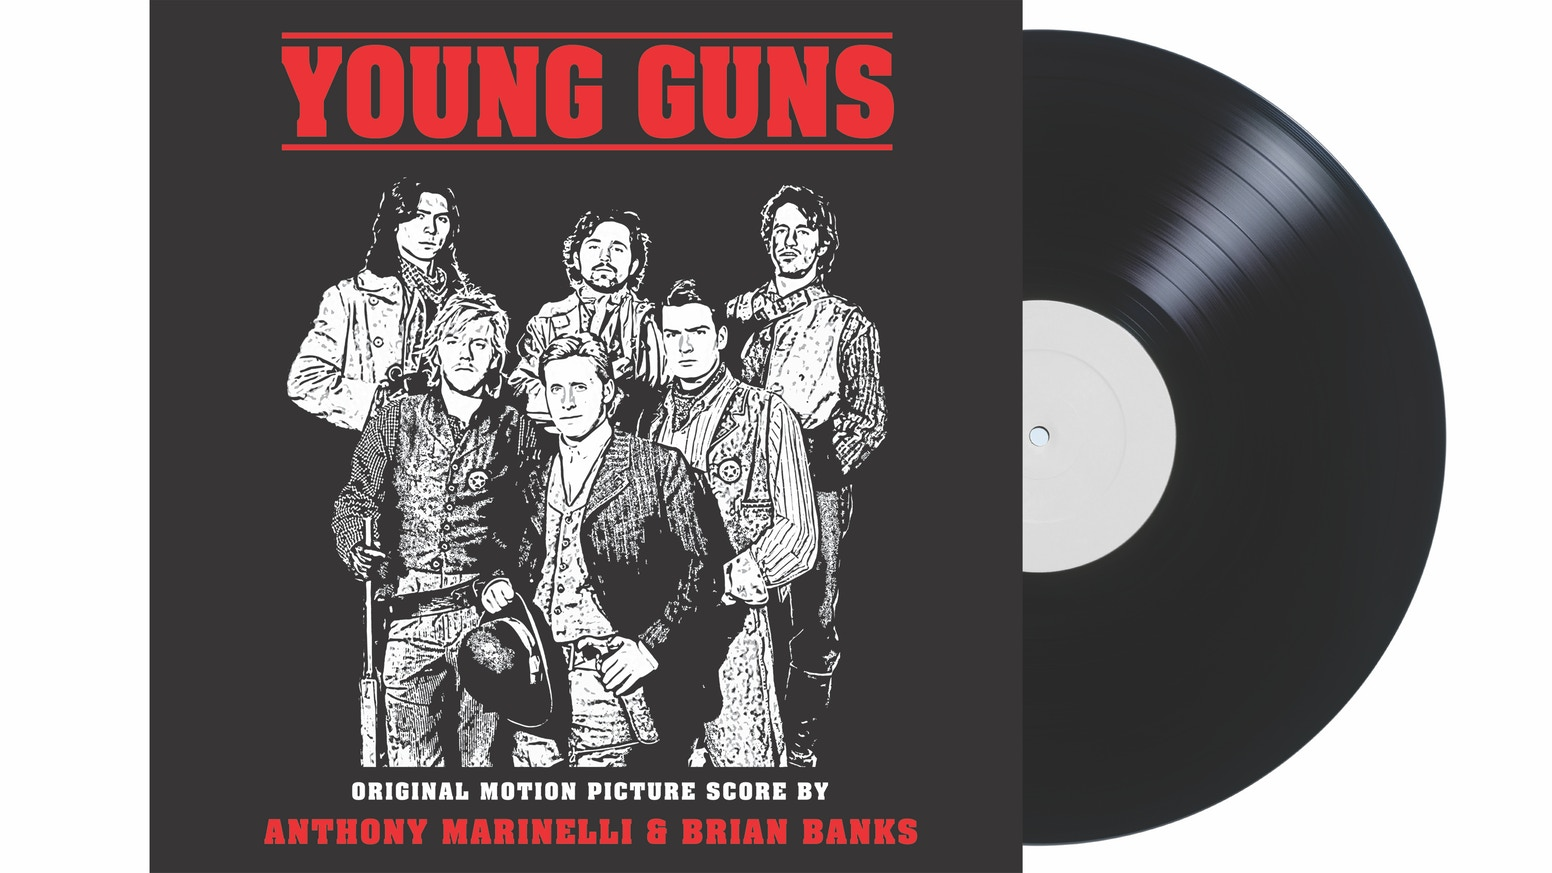 Support our independent record label as we release, for the first time ever, the epic score from the classic 80s film, YOUNG GUNS!